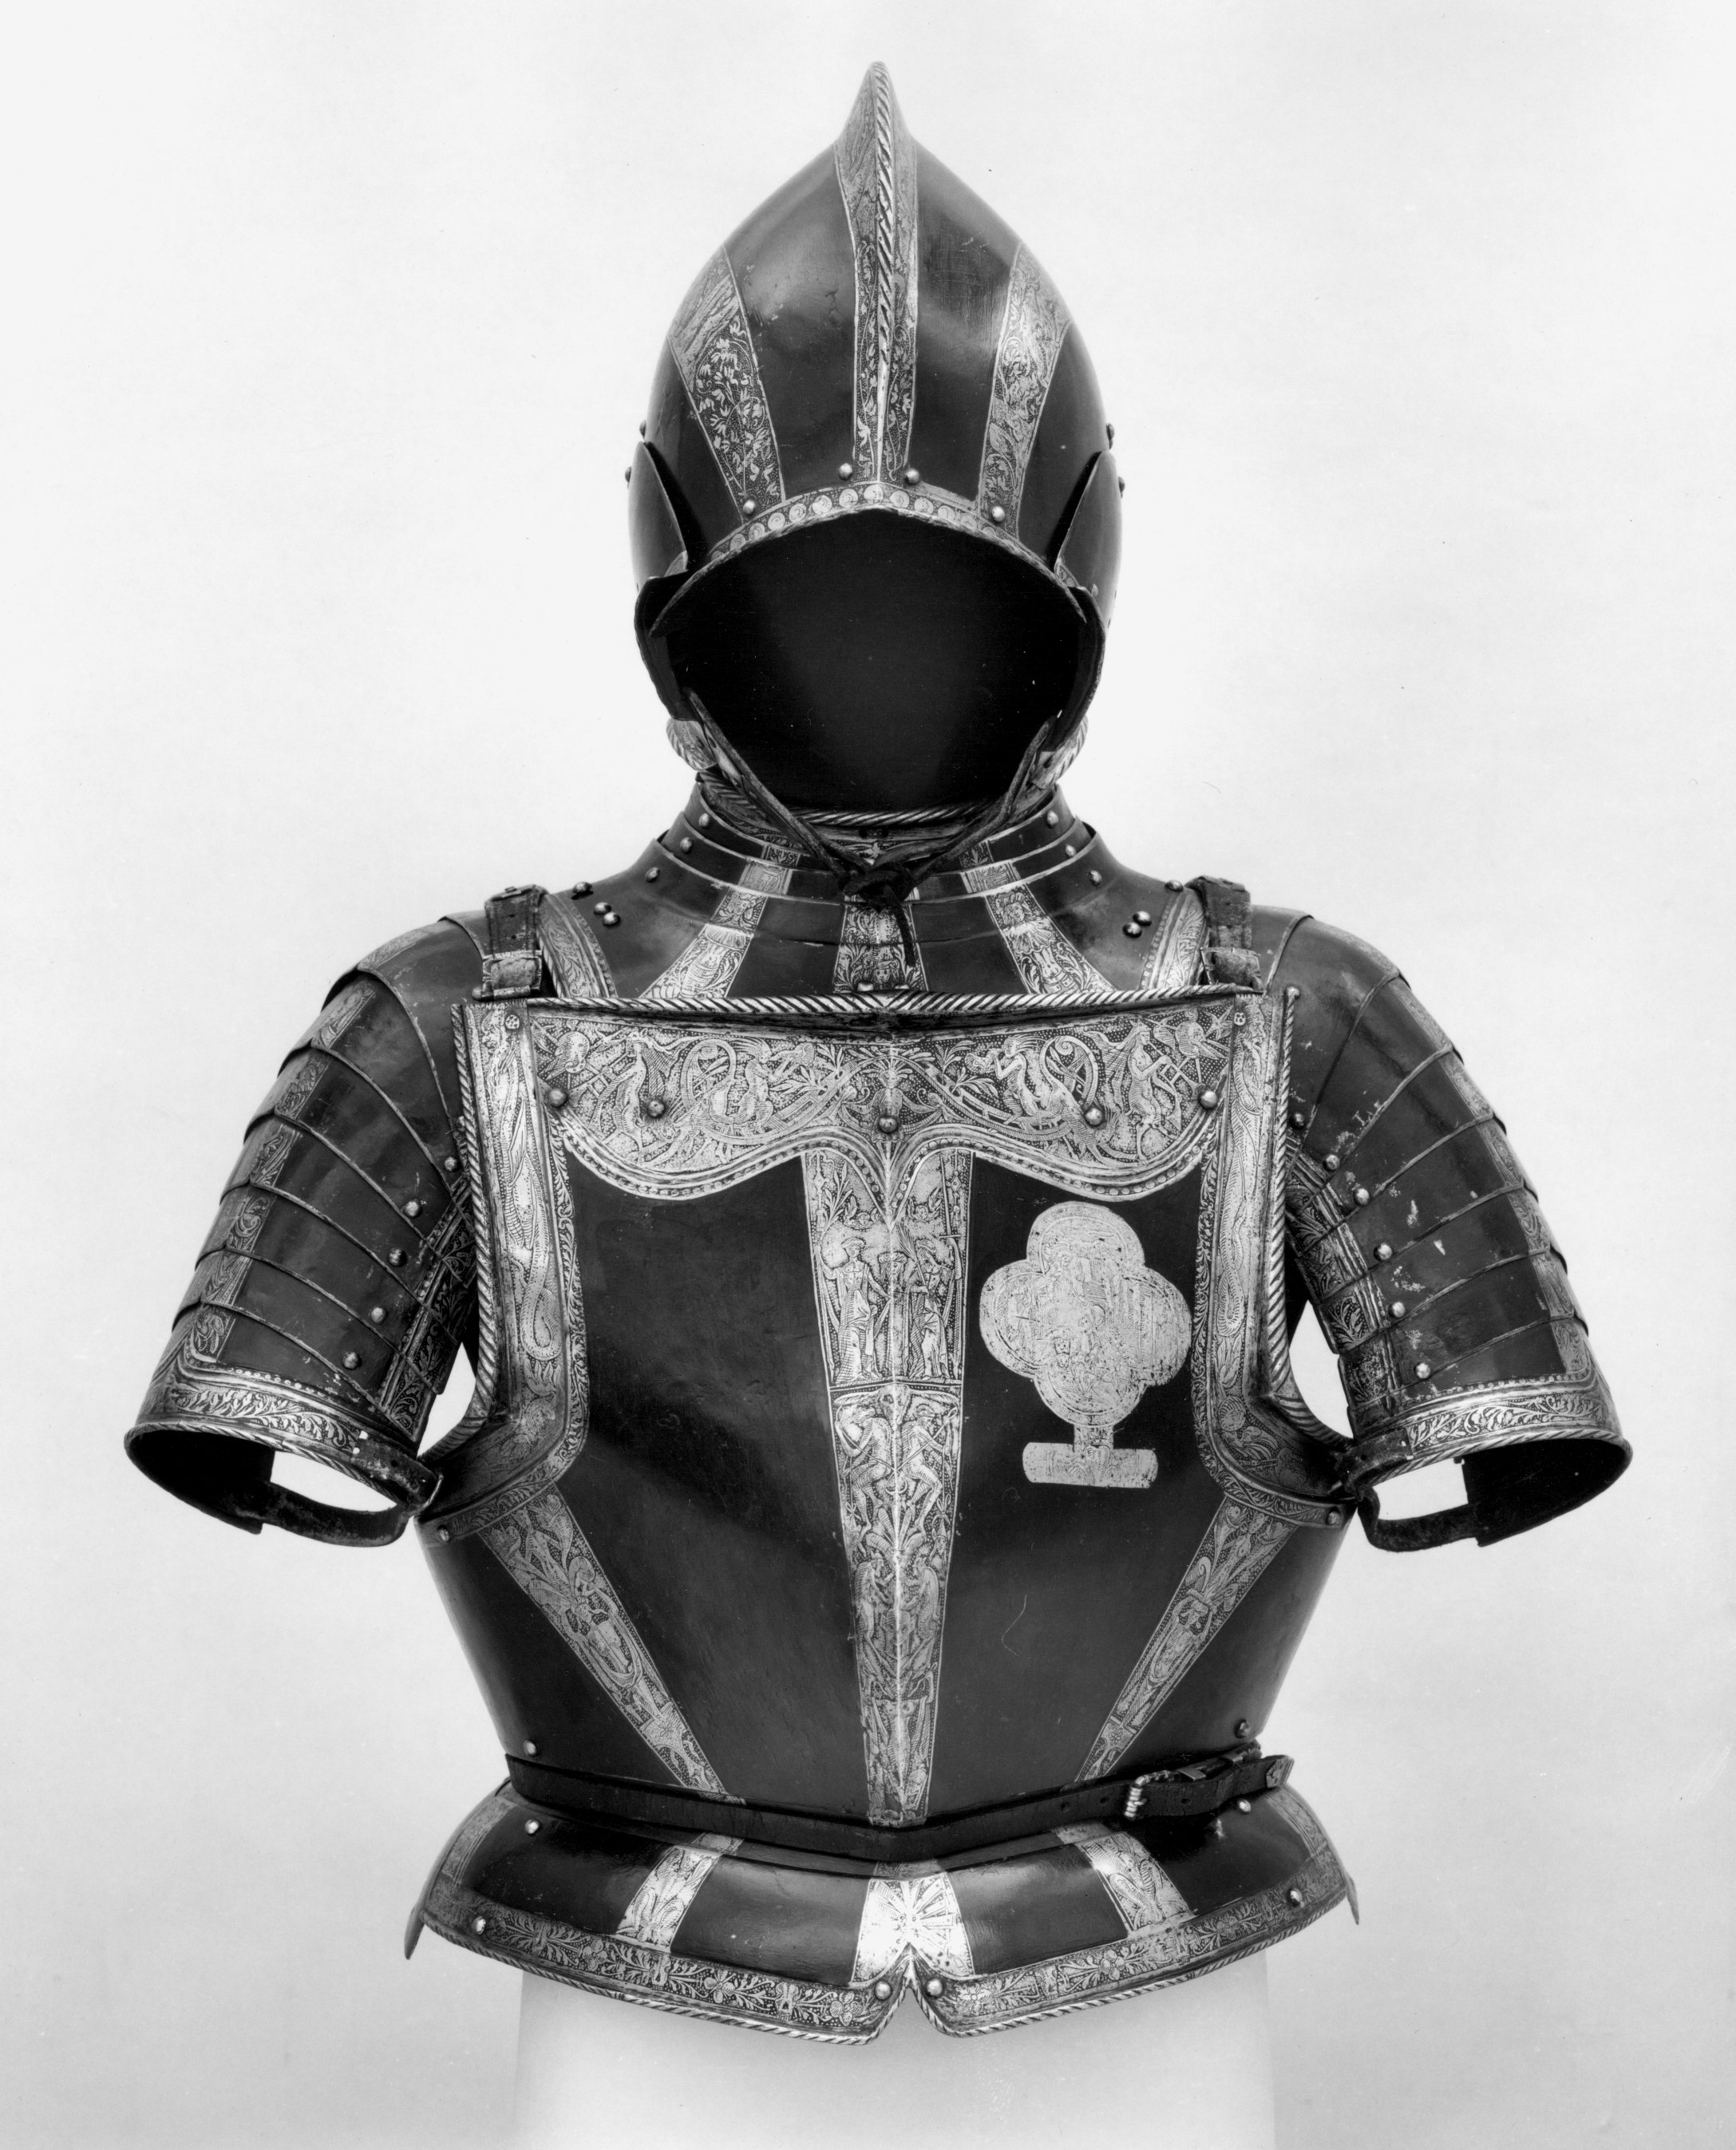 Armor, Northern German, ca. 1560-65. Courtesy the Metropolitan Museum of Art.